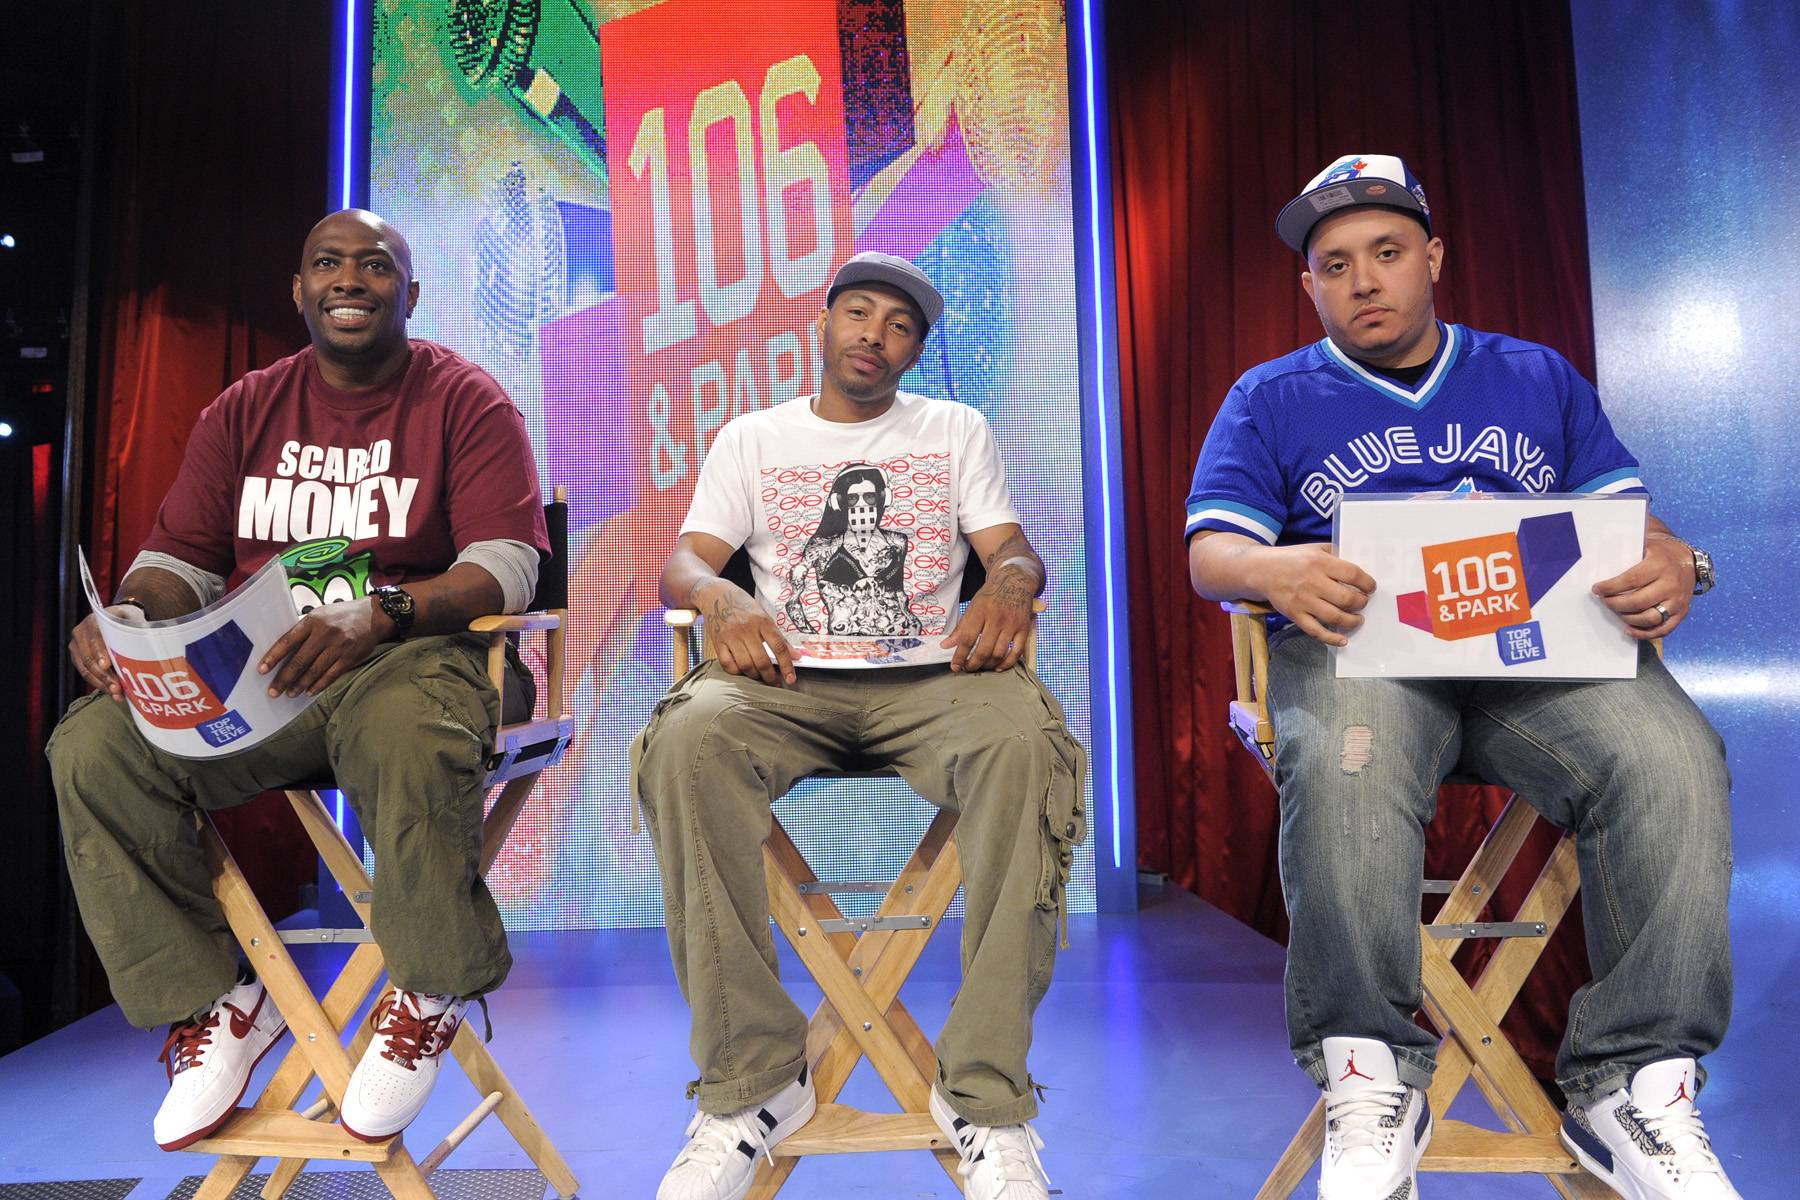 Judges For The Win - Freestyle Friday judges Bink! Bones Brigante and AJ Ahmed at 106 & Park, May 25, 2012. (Photo: John Ricard / BET)